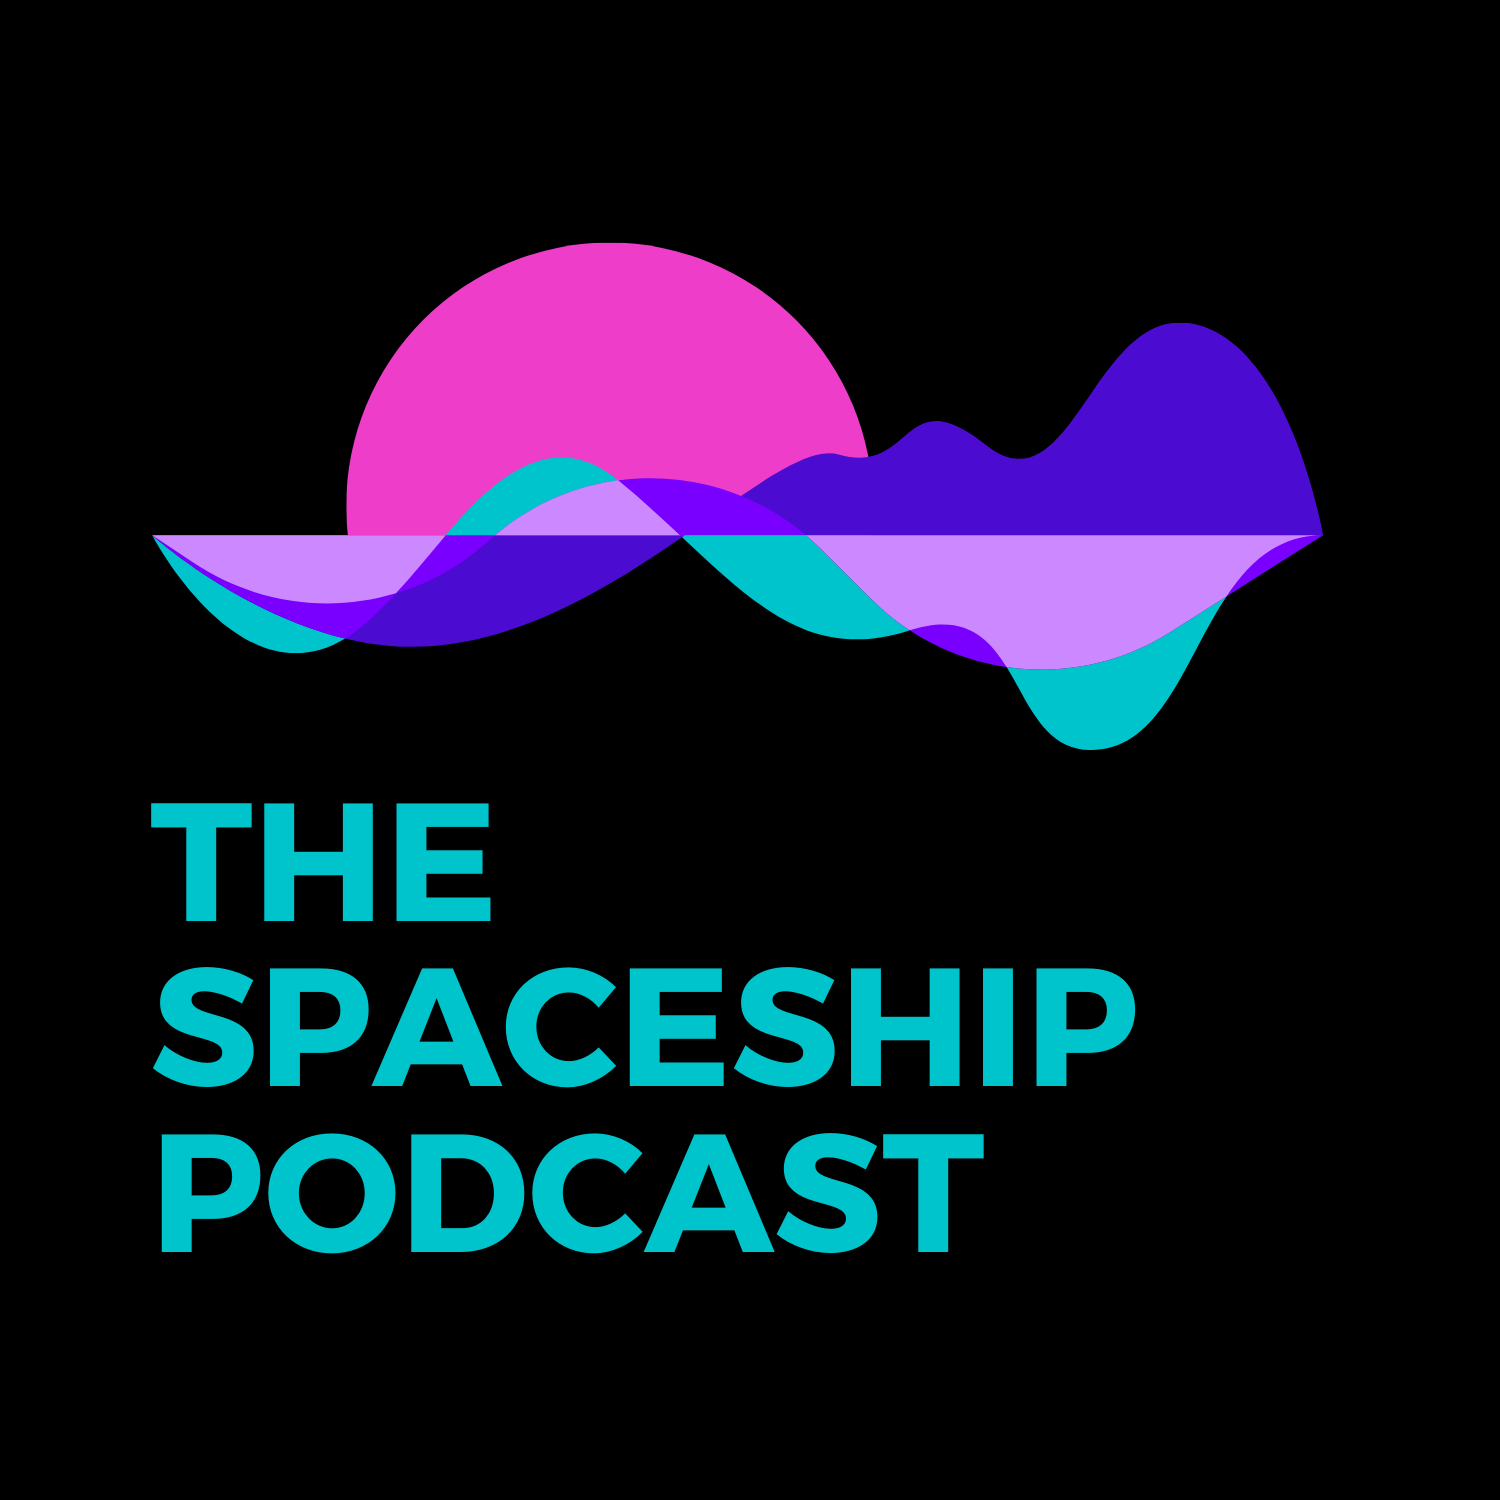 Show artwork for The Spaceship Podcast